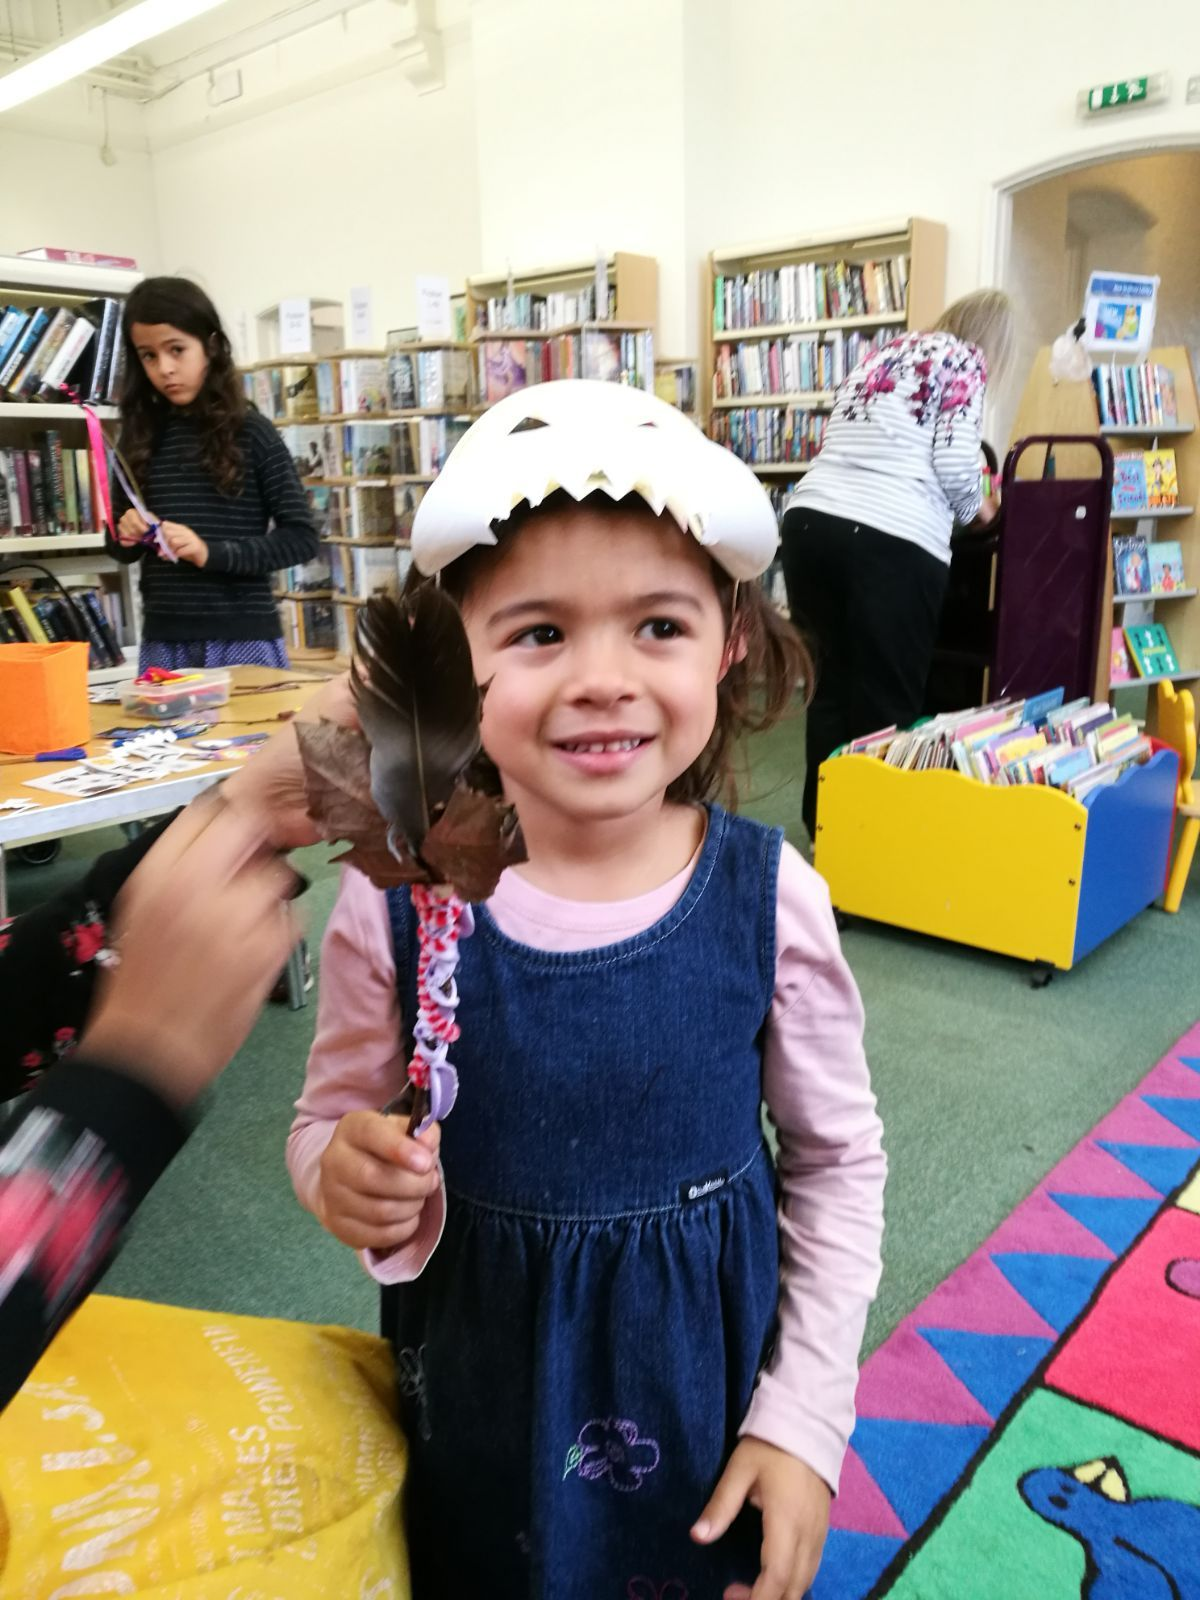 Halloween Crafts At Olney Library Were Very Popular With Over 60 Children And Their Families